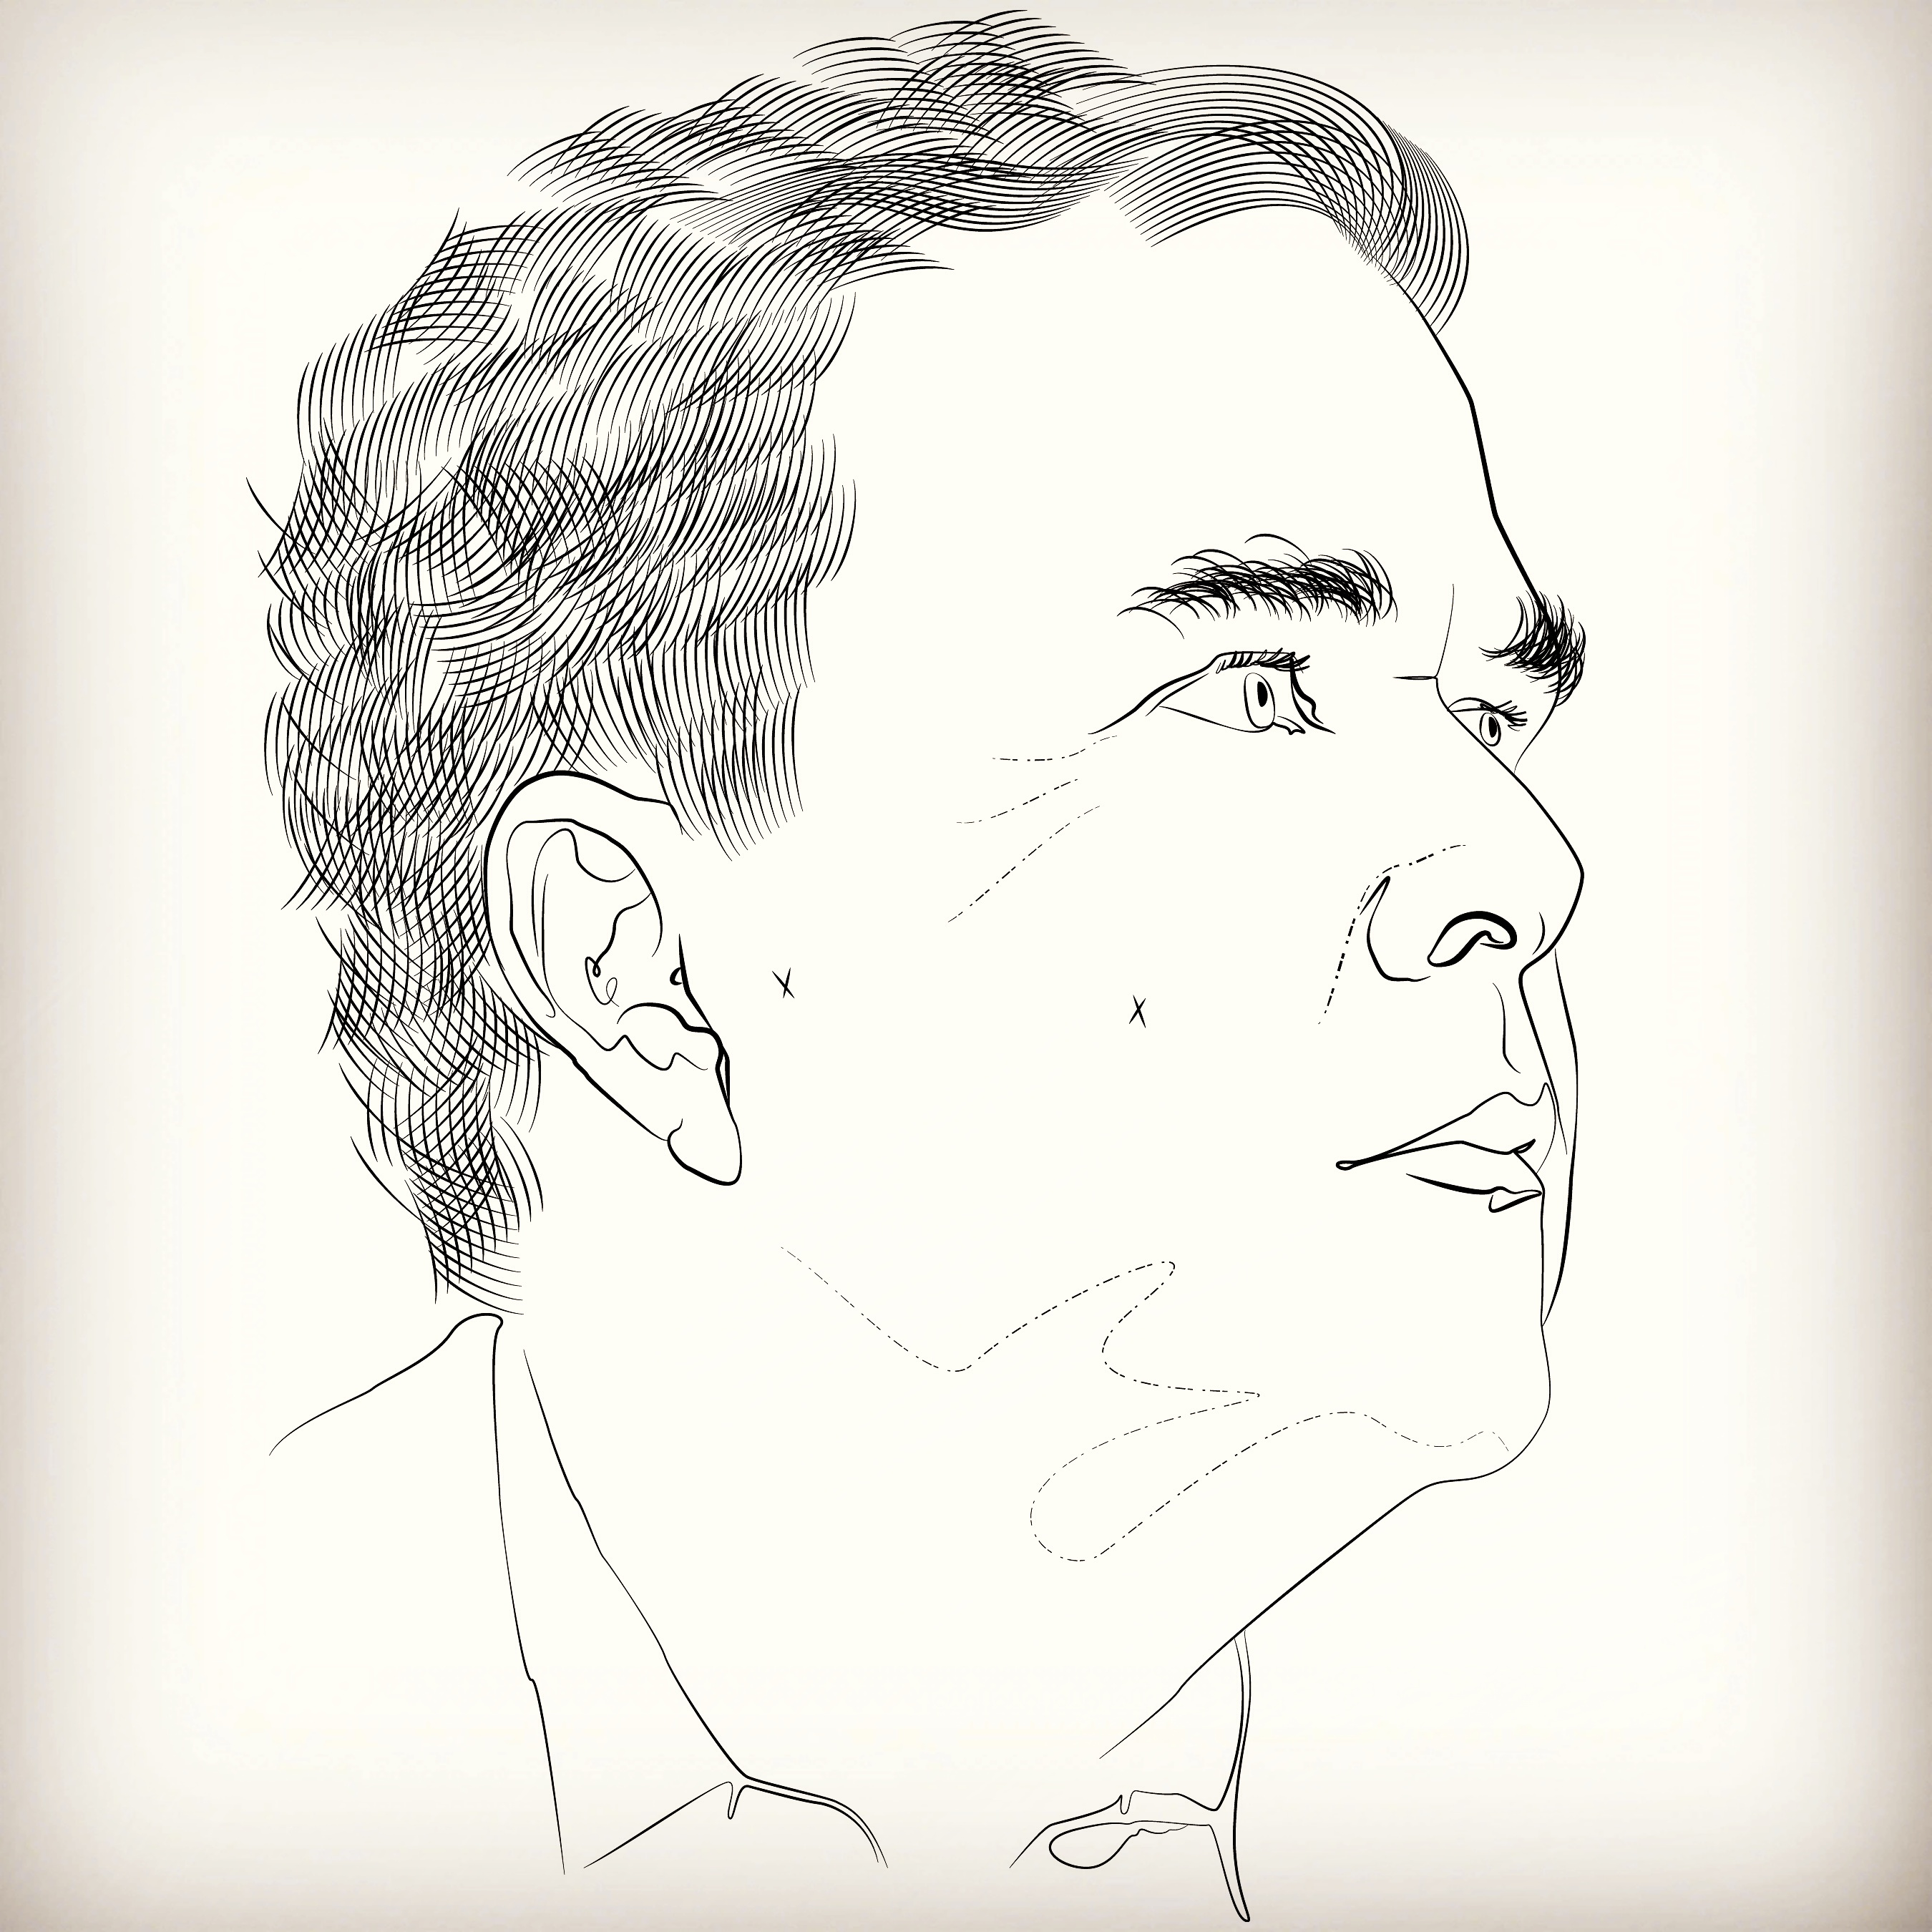 Presidential Candidate Series - Jeb Bush